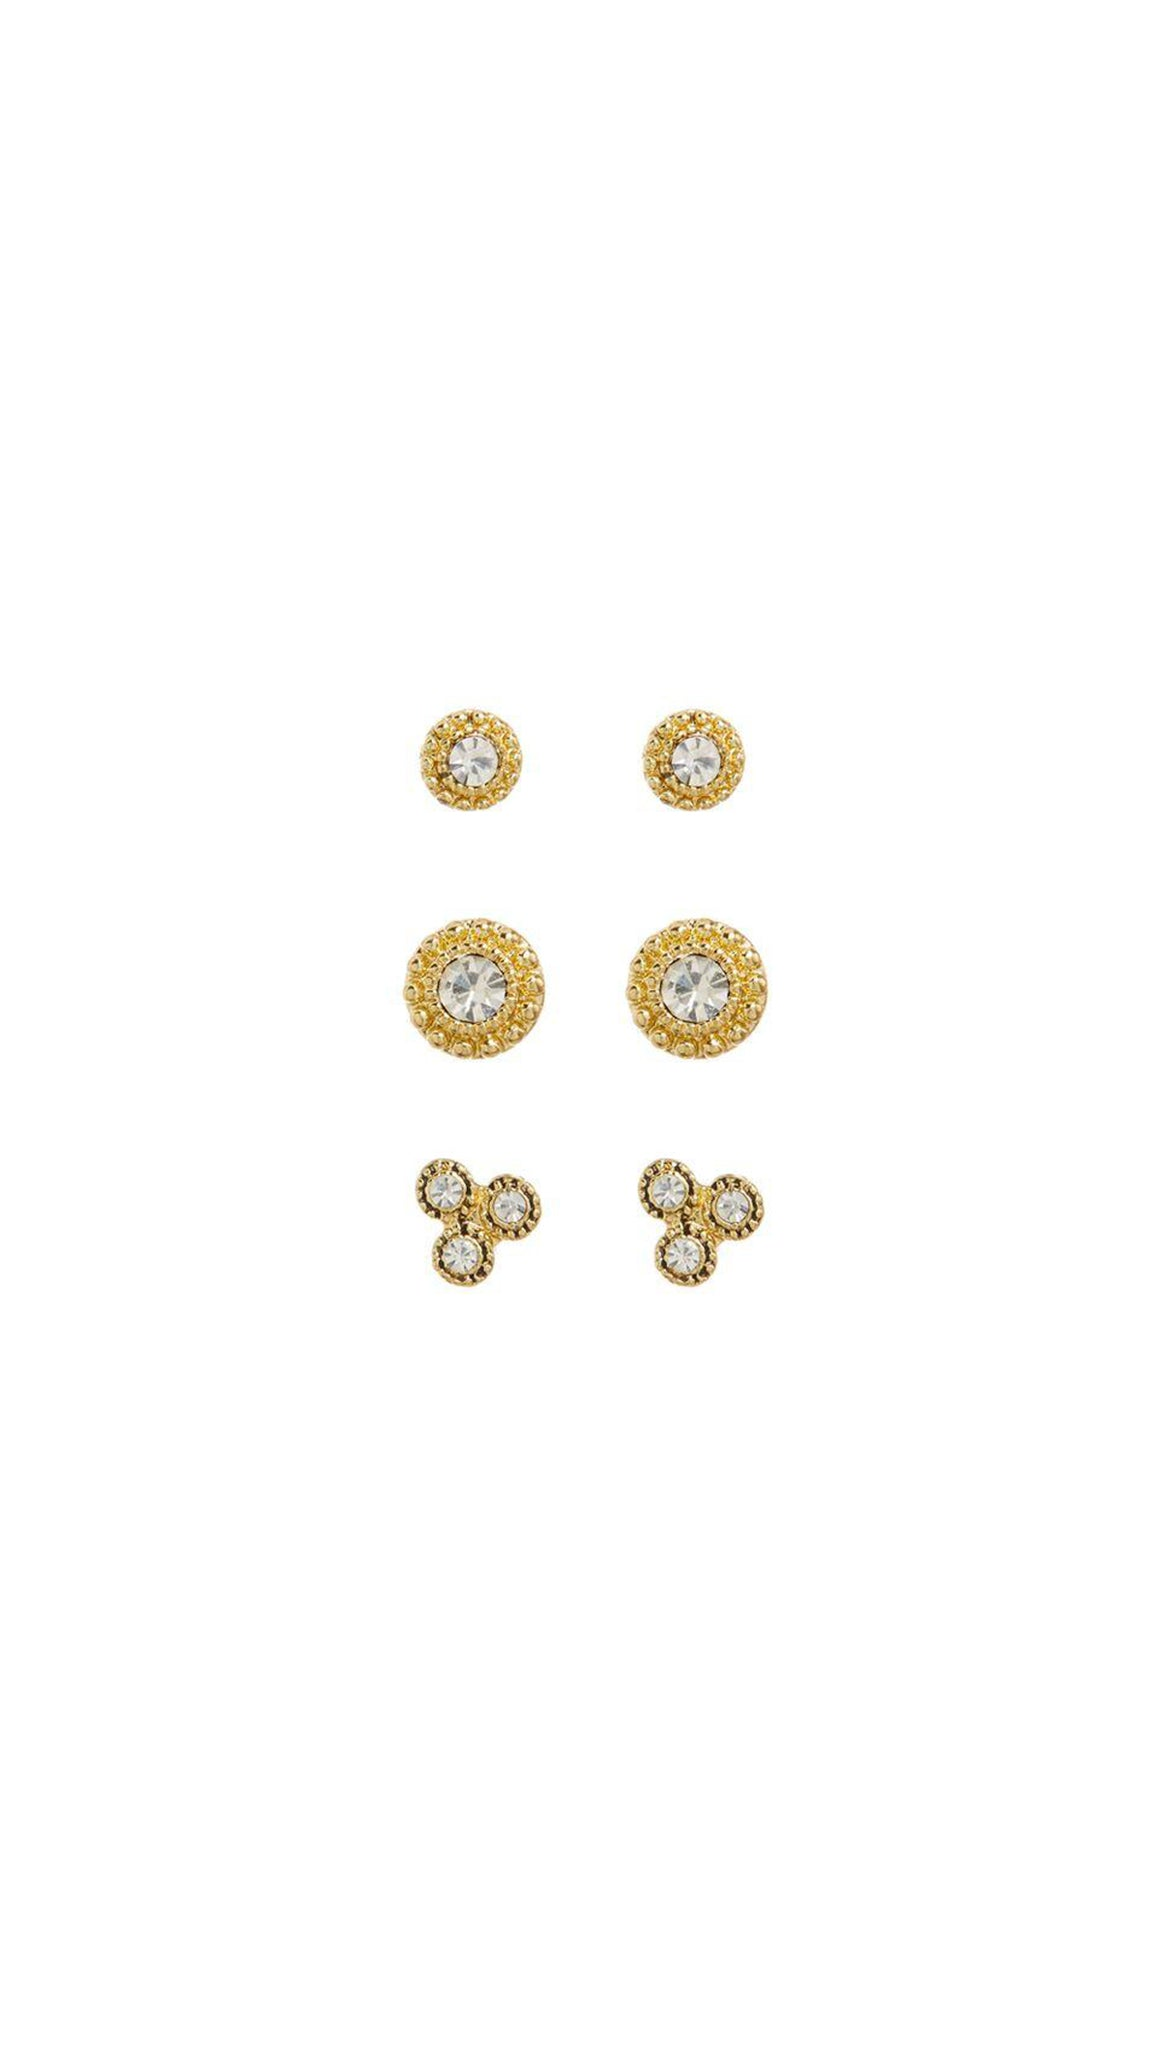 LUV AJ Gold Earring Set